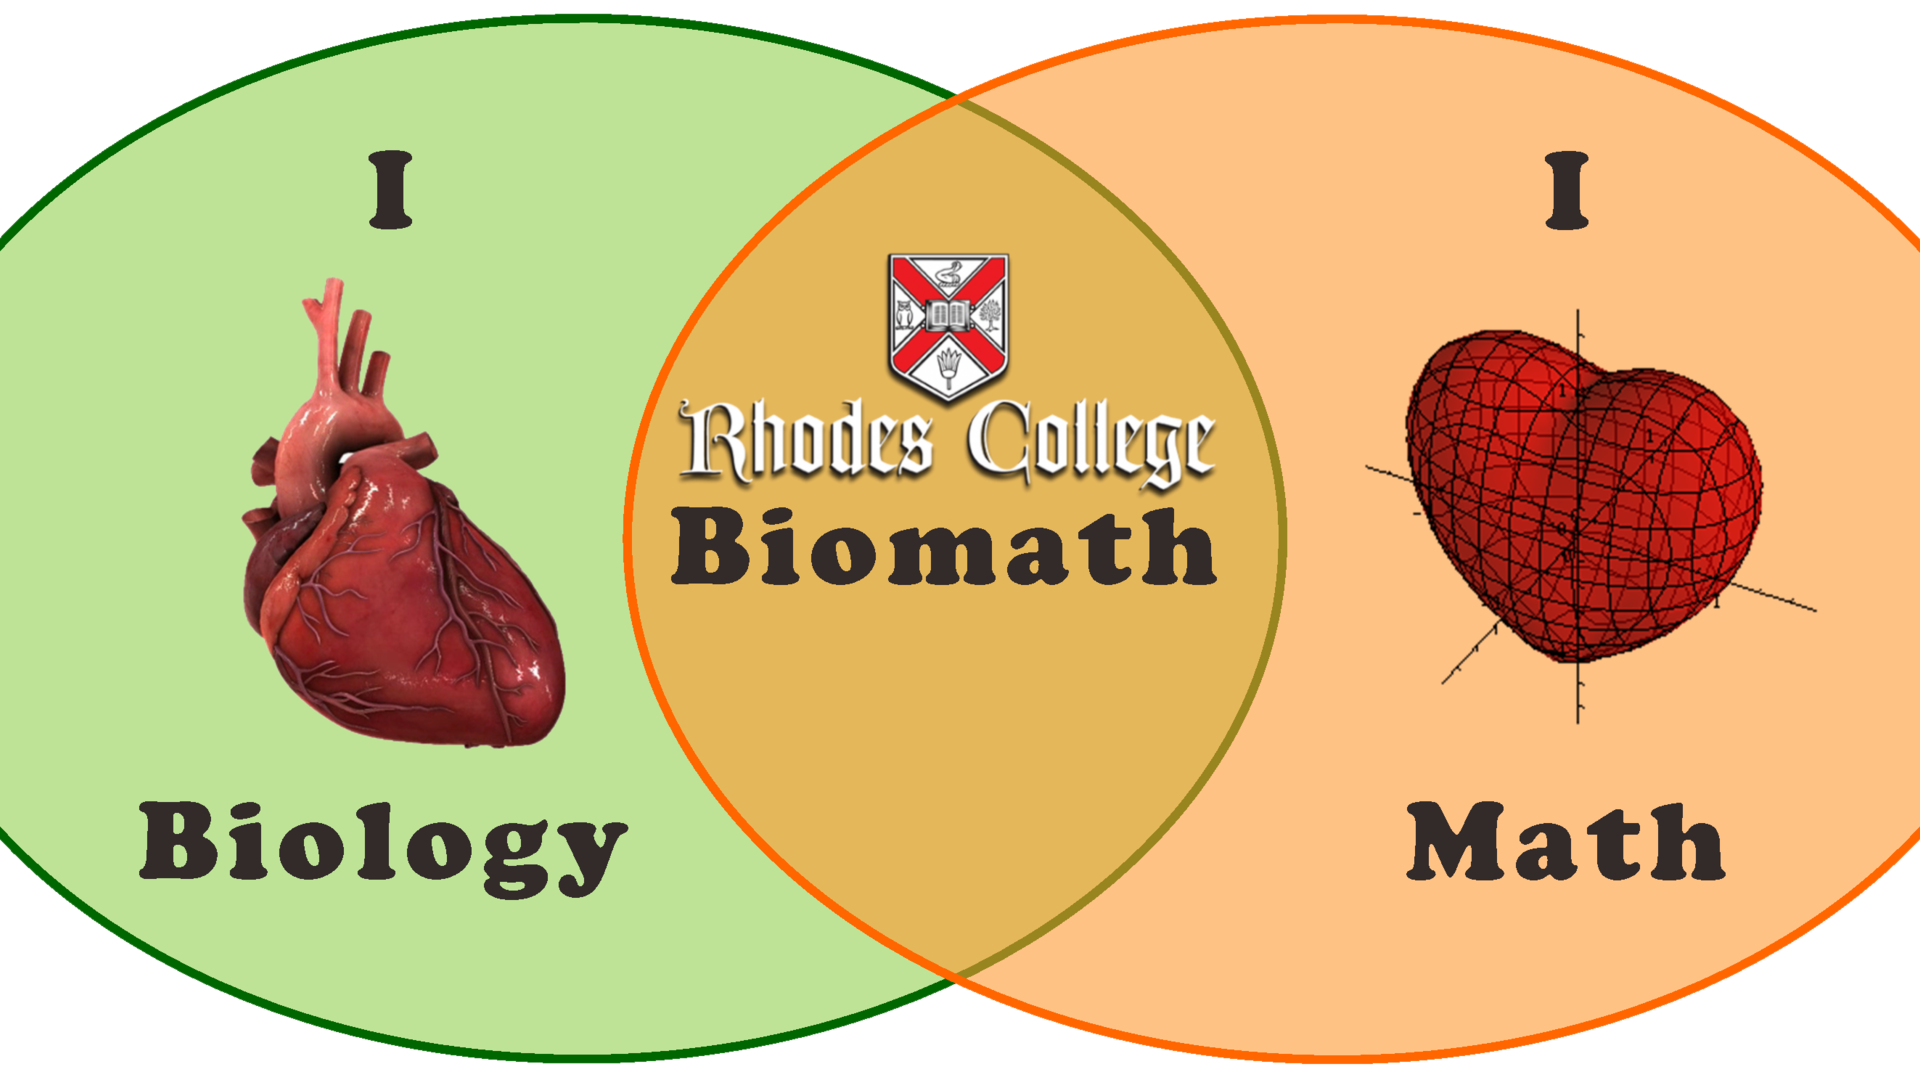 illustration of math and biology overlap